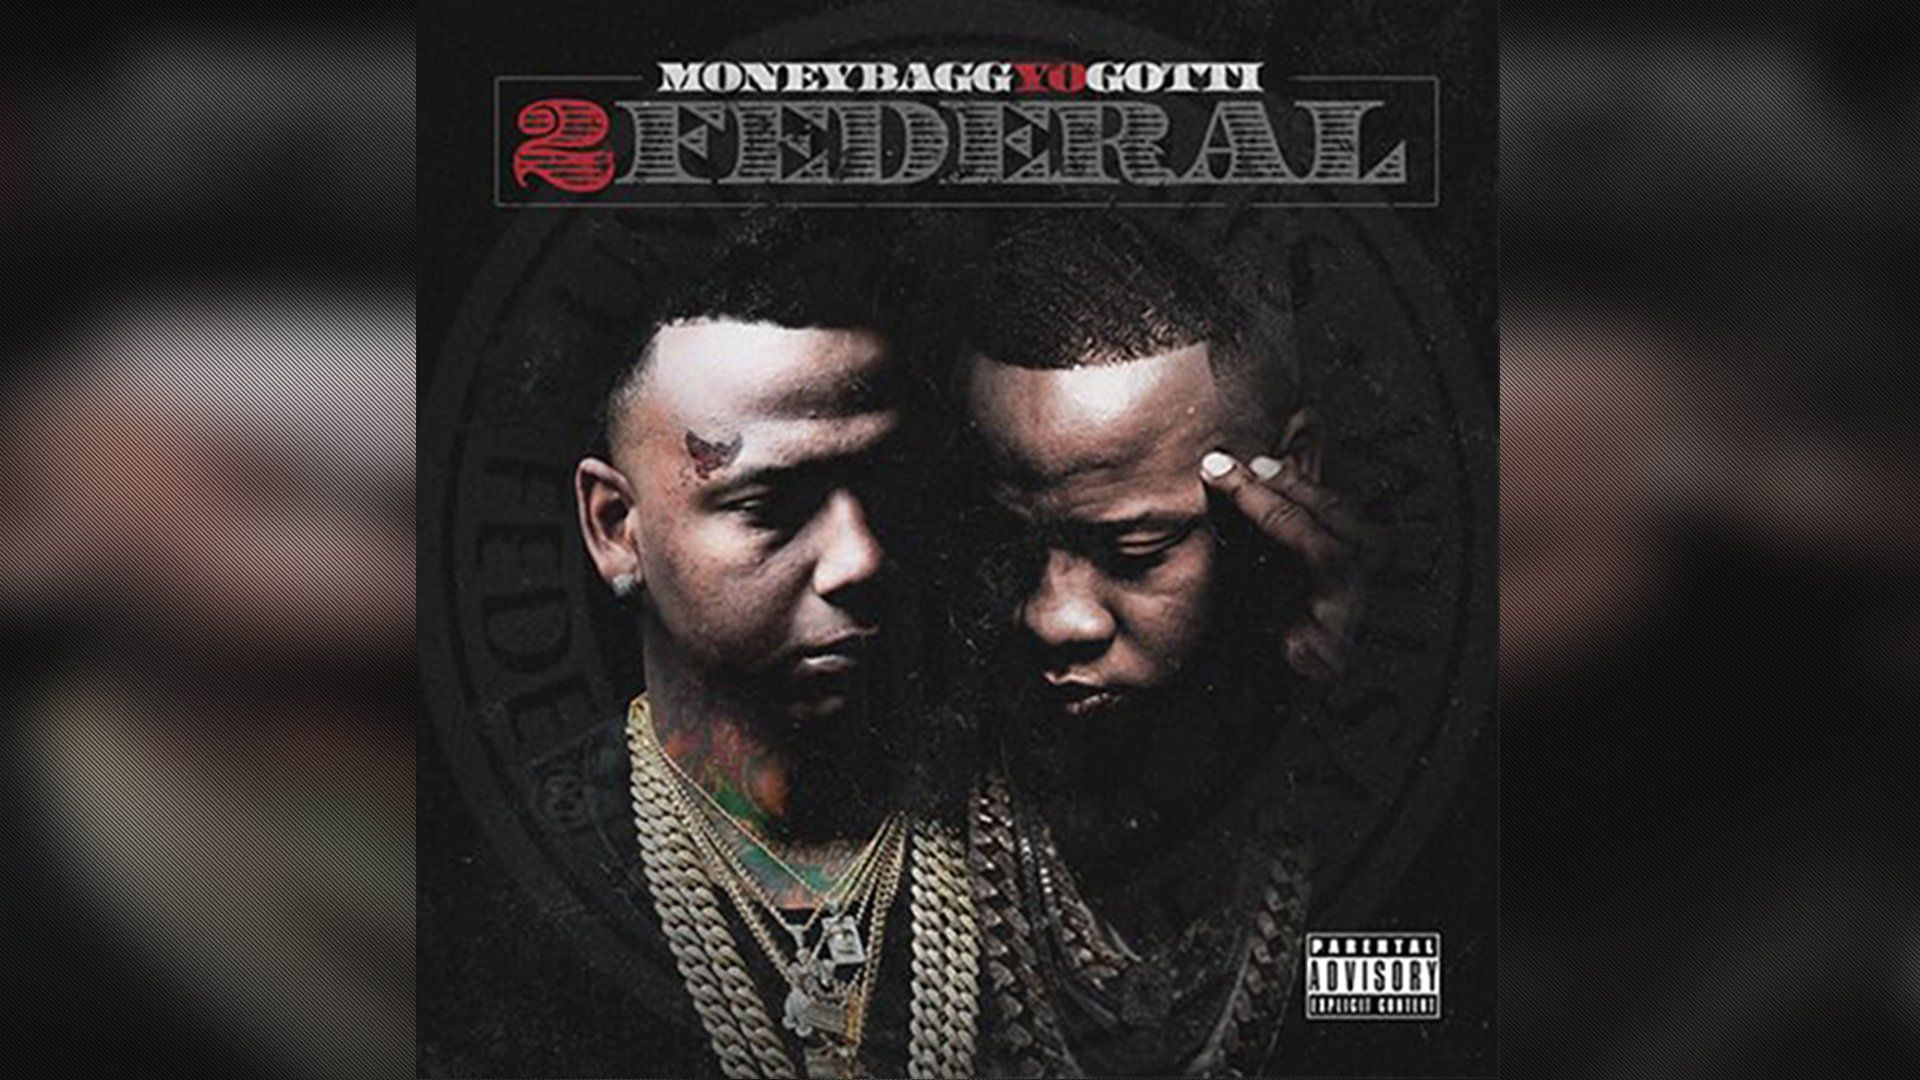 MoneyBagg Yo & Yo Gotti - '2Federal' [Mixtape] – Club4 Clothing